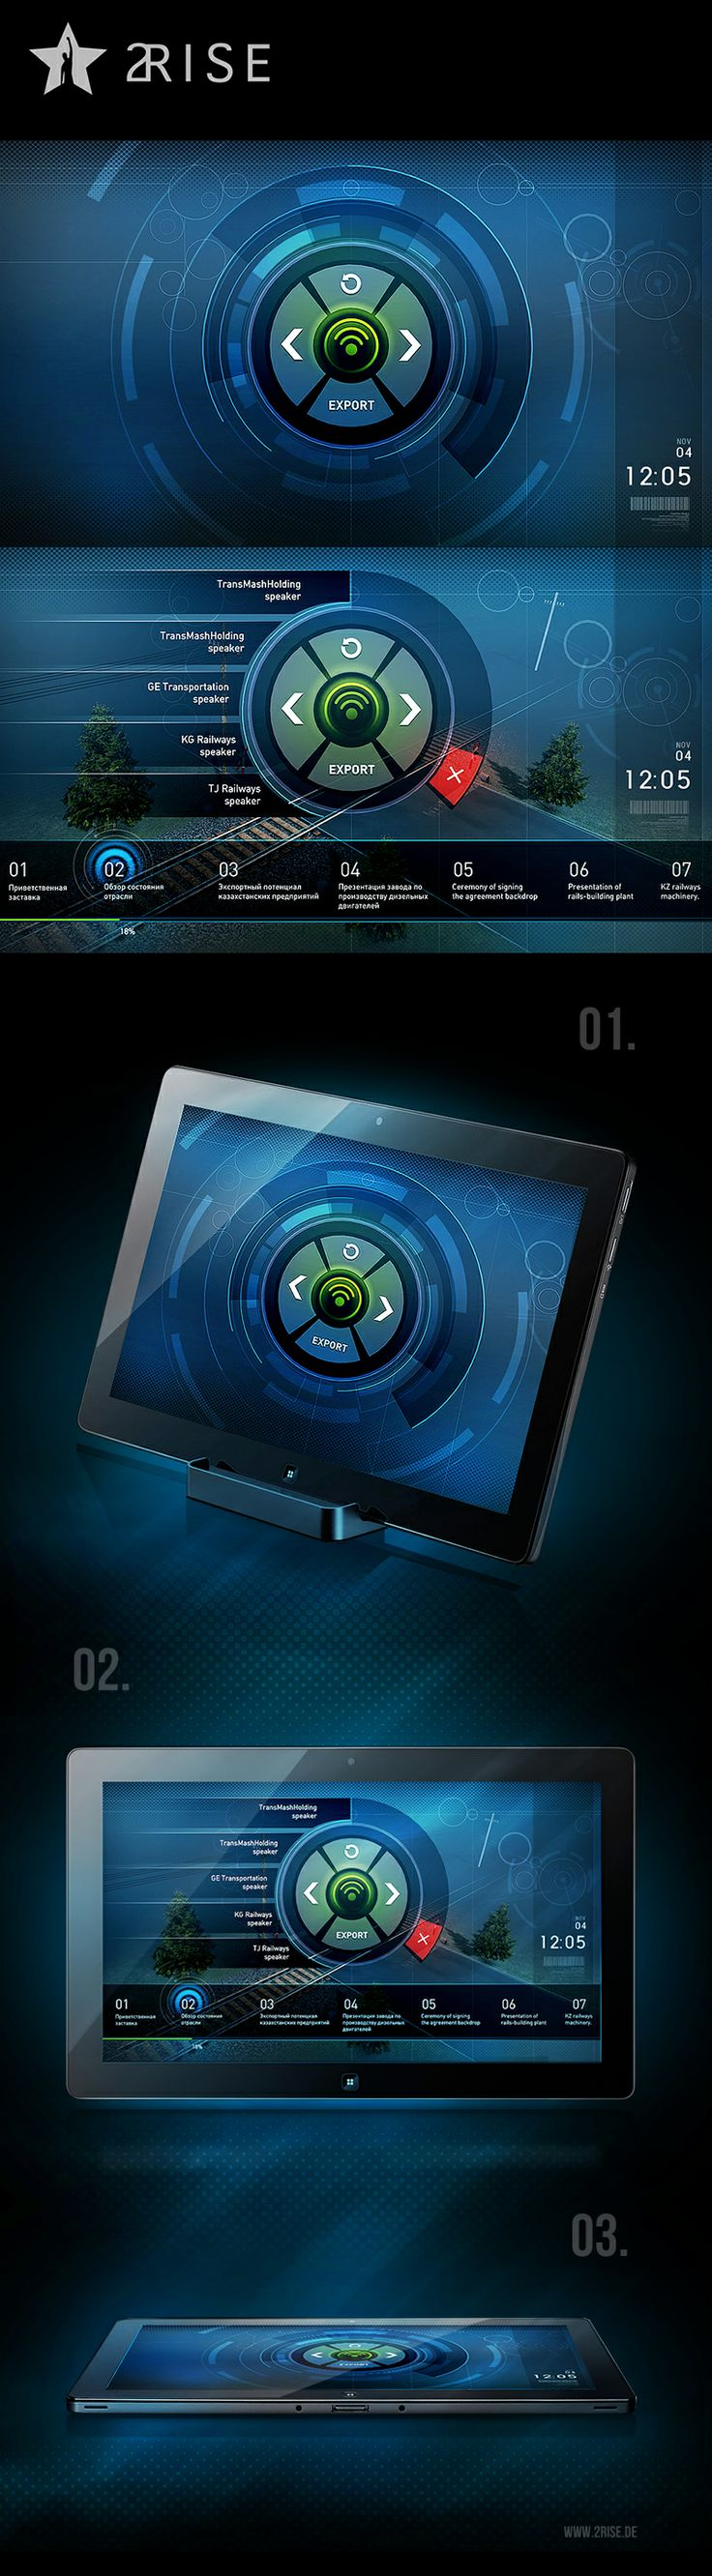 #2RISE TABLET CONTROL by Jedi88.deviantart.com on @deviantART